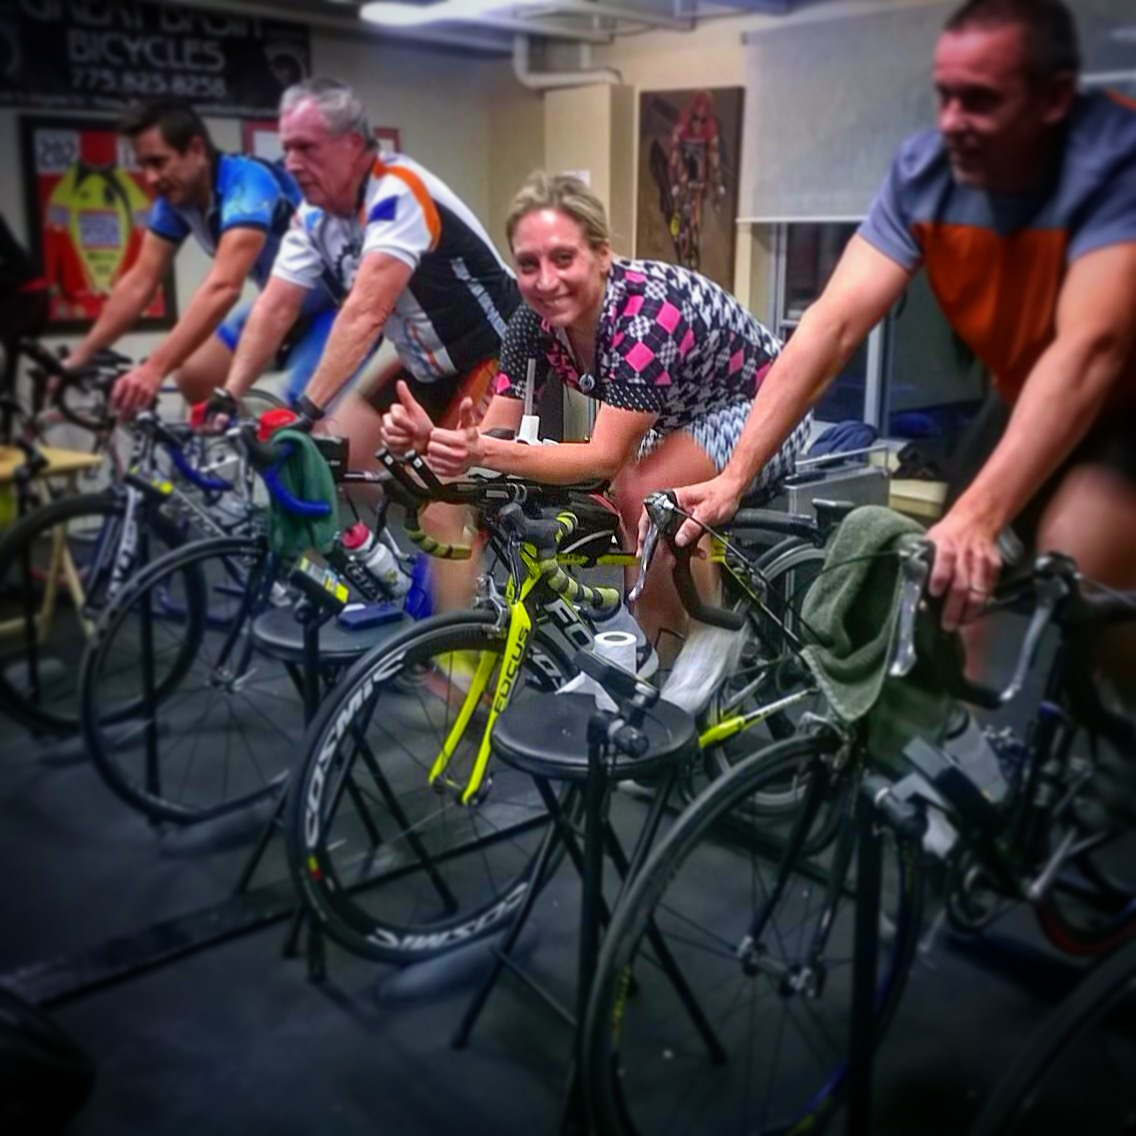 Here I am, riding with some strong men at Great Basin Bicycles. They believe they can do it... so, why don't I?